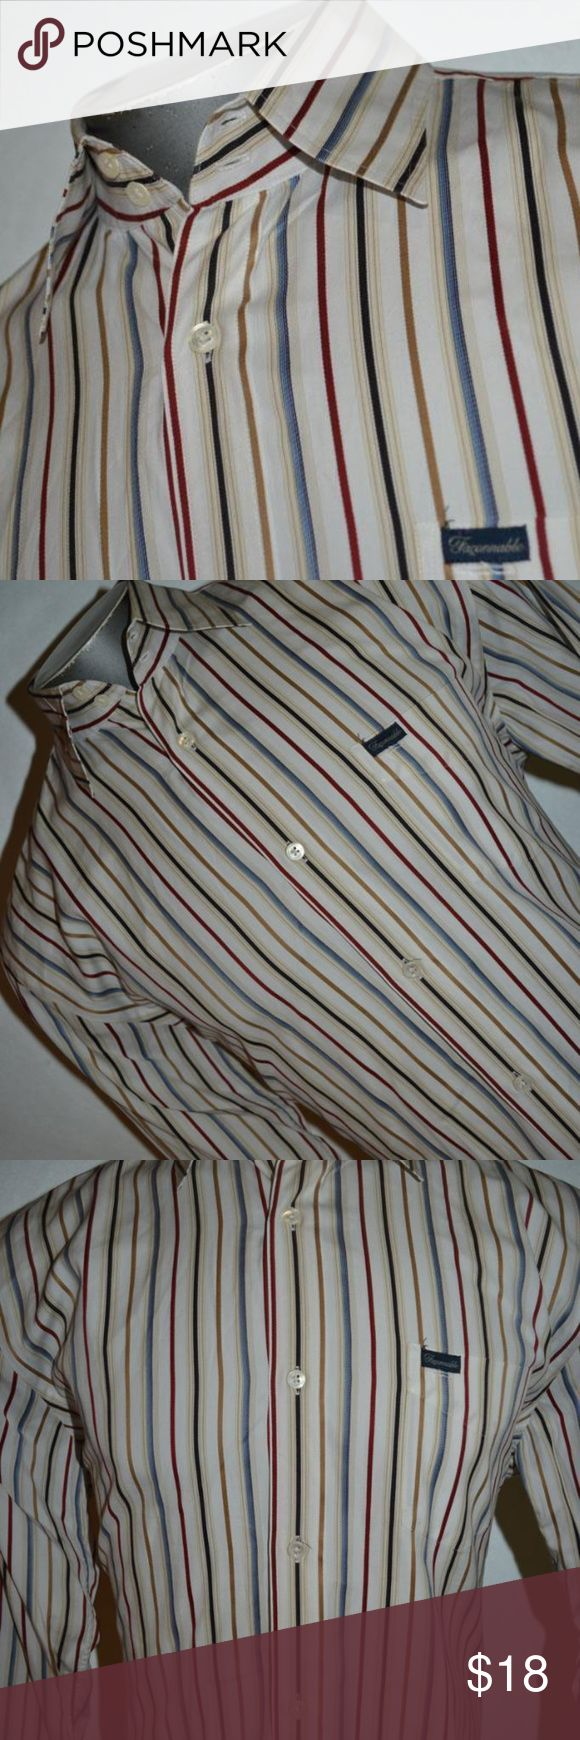 7140 Faconnable Dress Shirt Size Medium Red Blue 7140 Mens Faconnable Dress Shirt Size Medium Red Tan Blue Striped 100% Cotton    Size: Medium  Top to Bottom: 30 Inches  Pit to Pit: 23.5 Inches  Color: Blue Tan Red Striped    This will ship out the day of or the after payment is received. Faconnable Shirts Dress Shirts